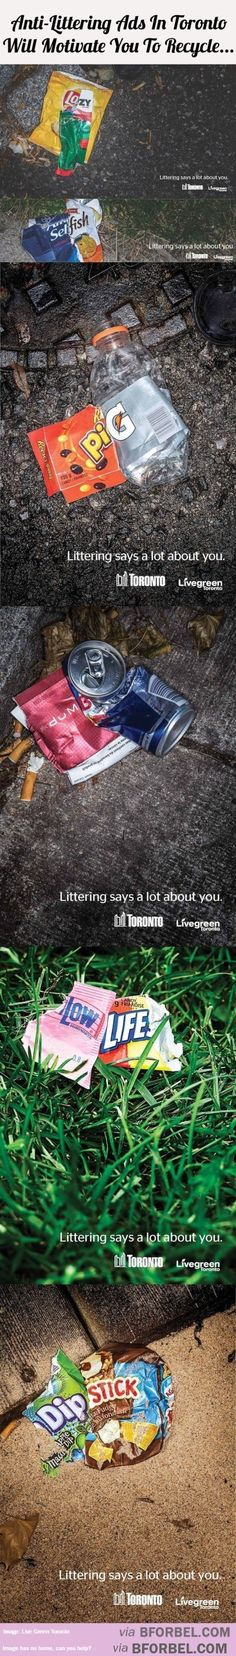 6 Anti-Littering Ads In Toronto Will Motivate You To Recycle…